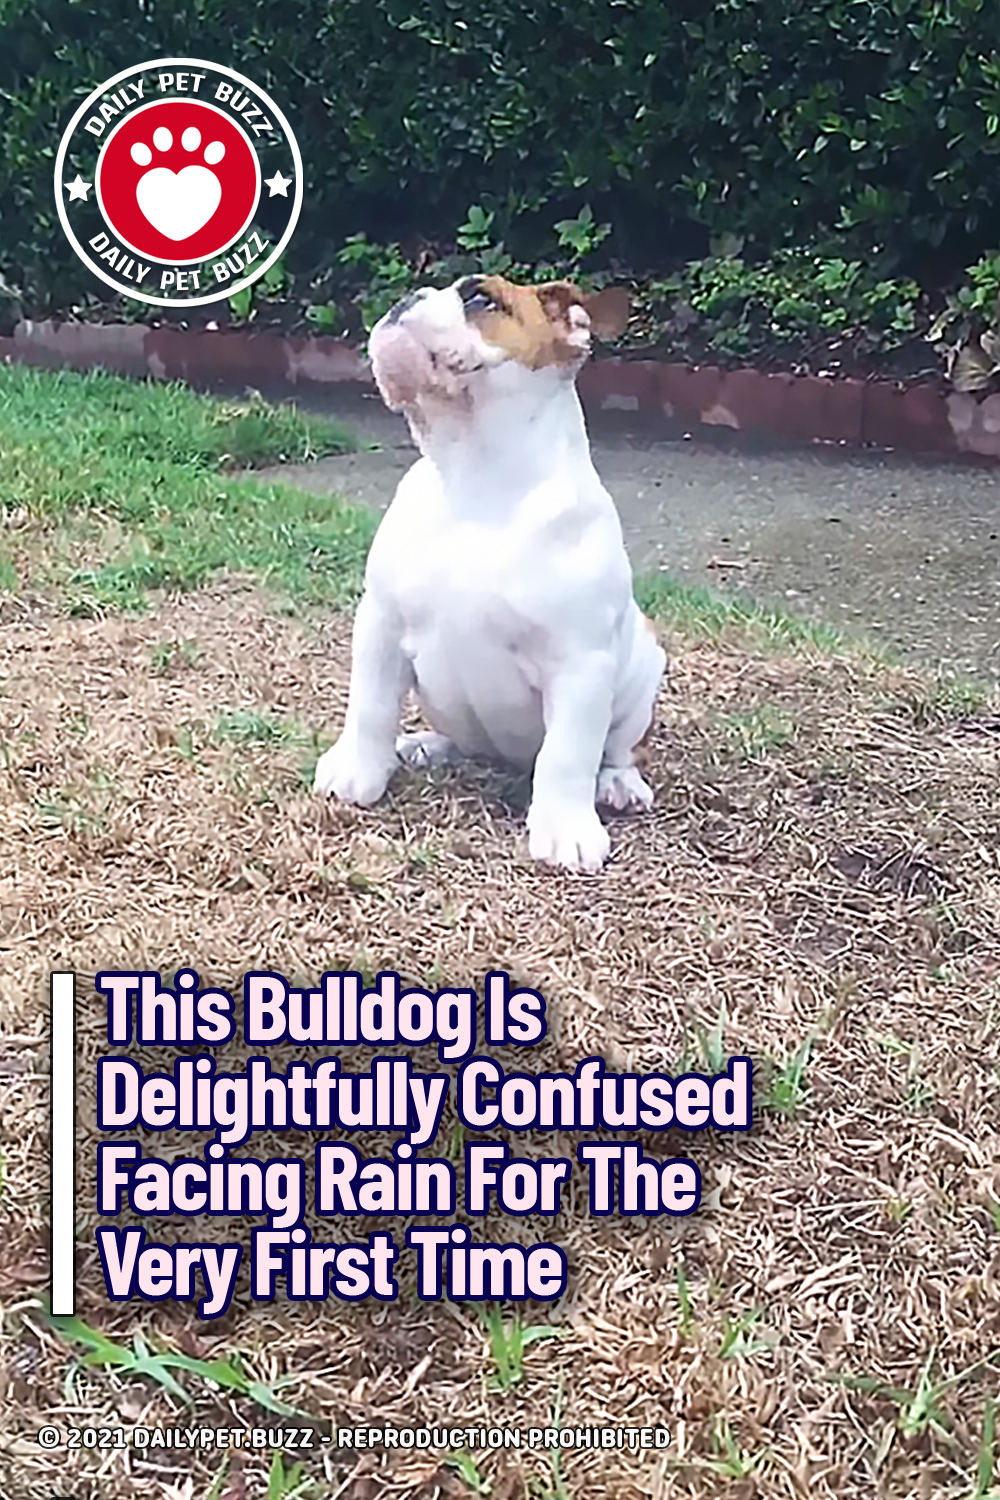 This Bulldog Is Delightfully Confused Facing Rain For The Very First Time